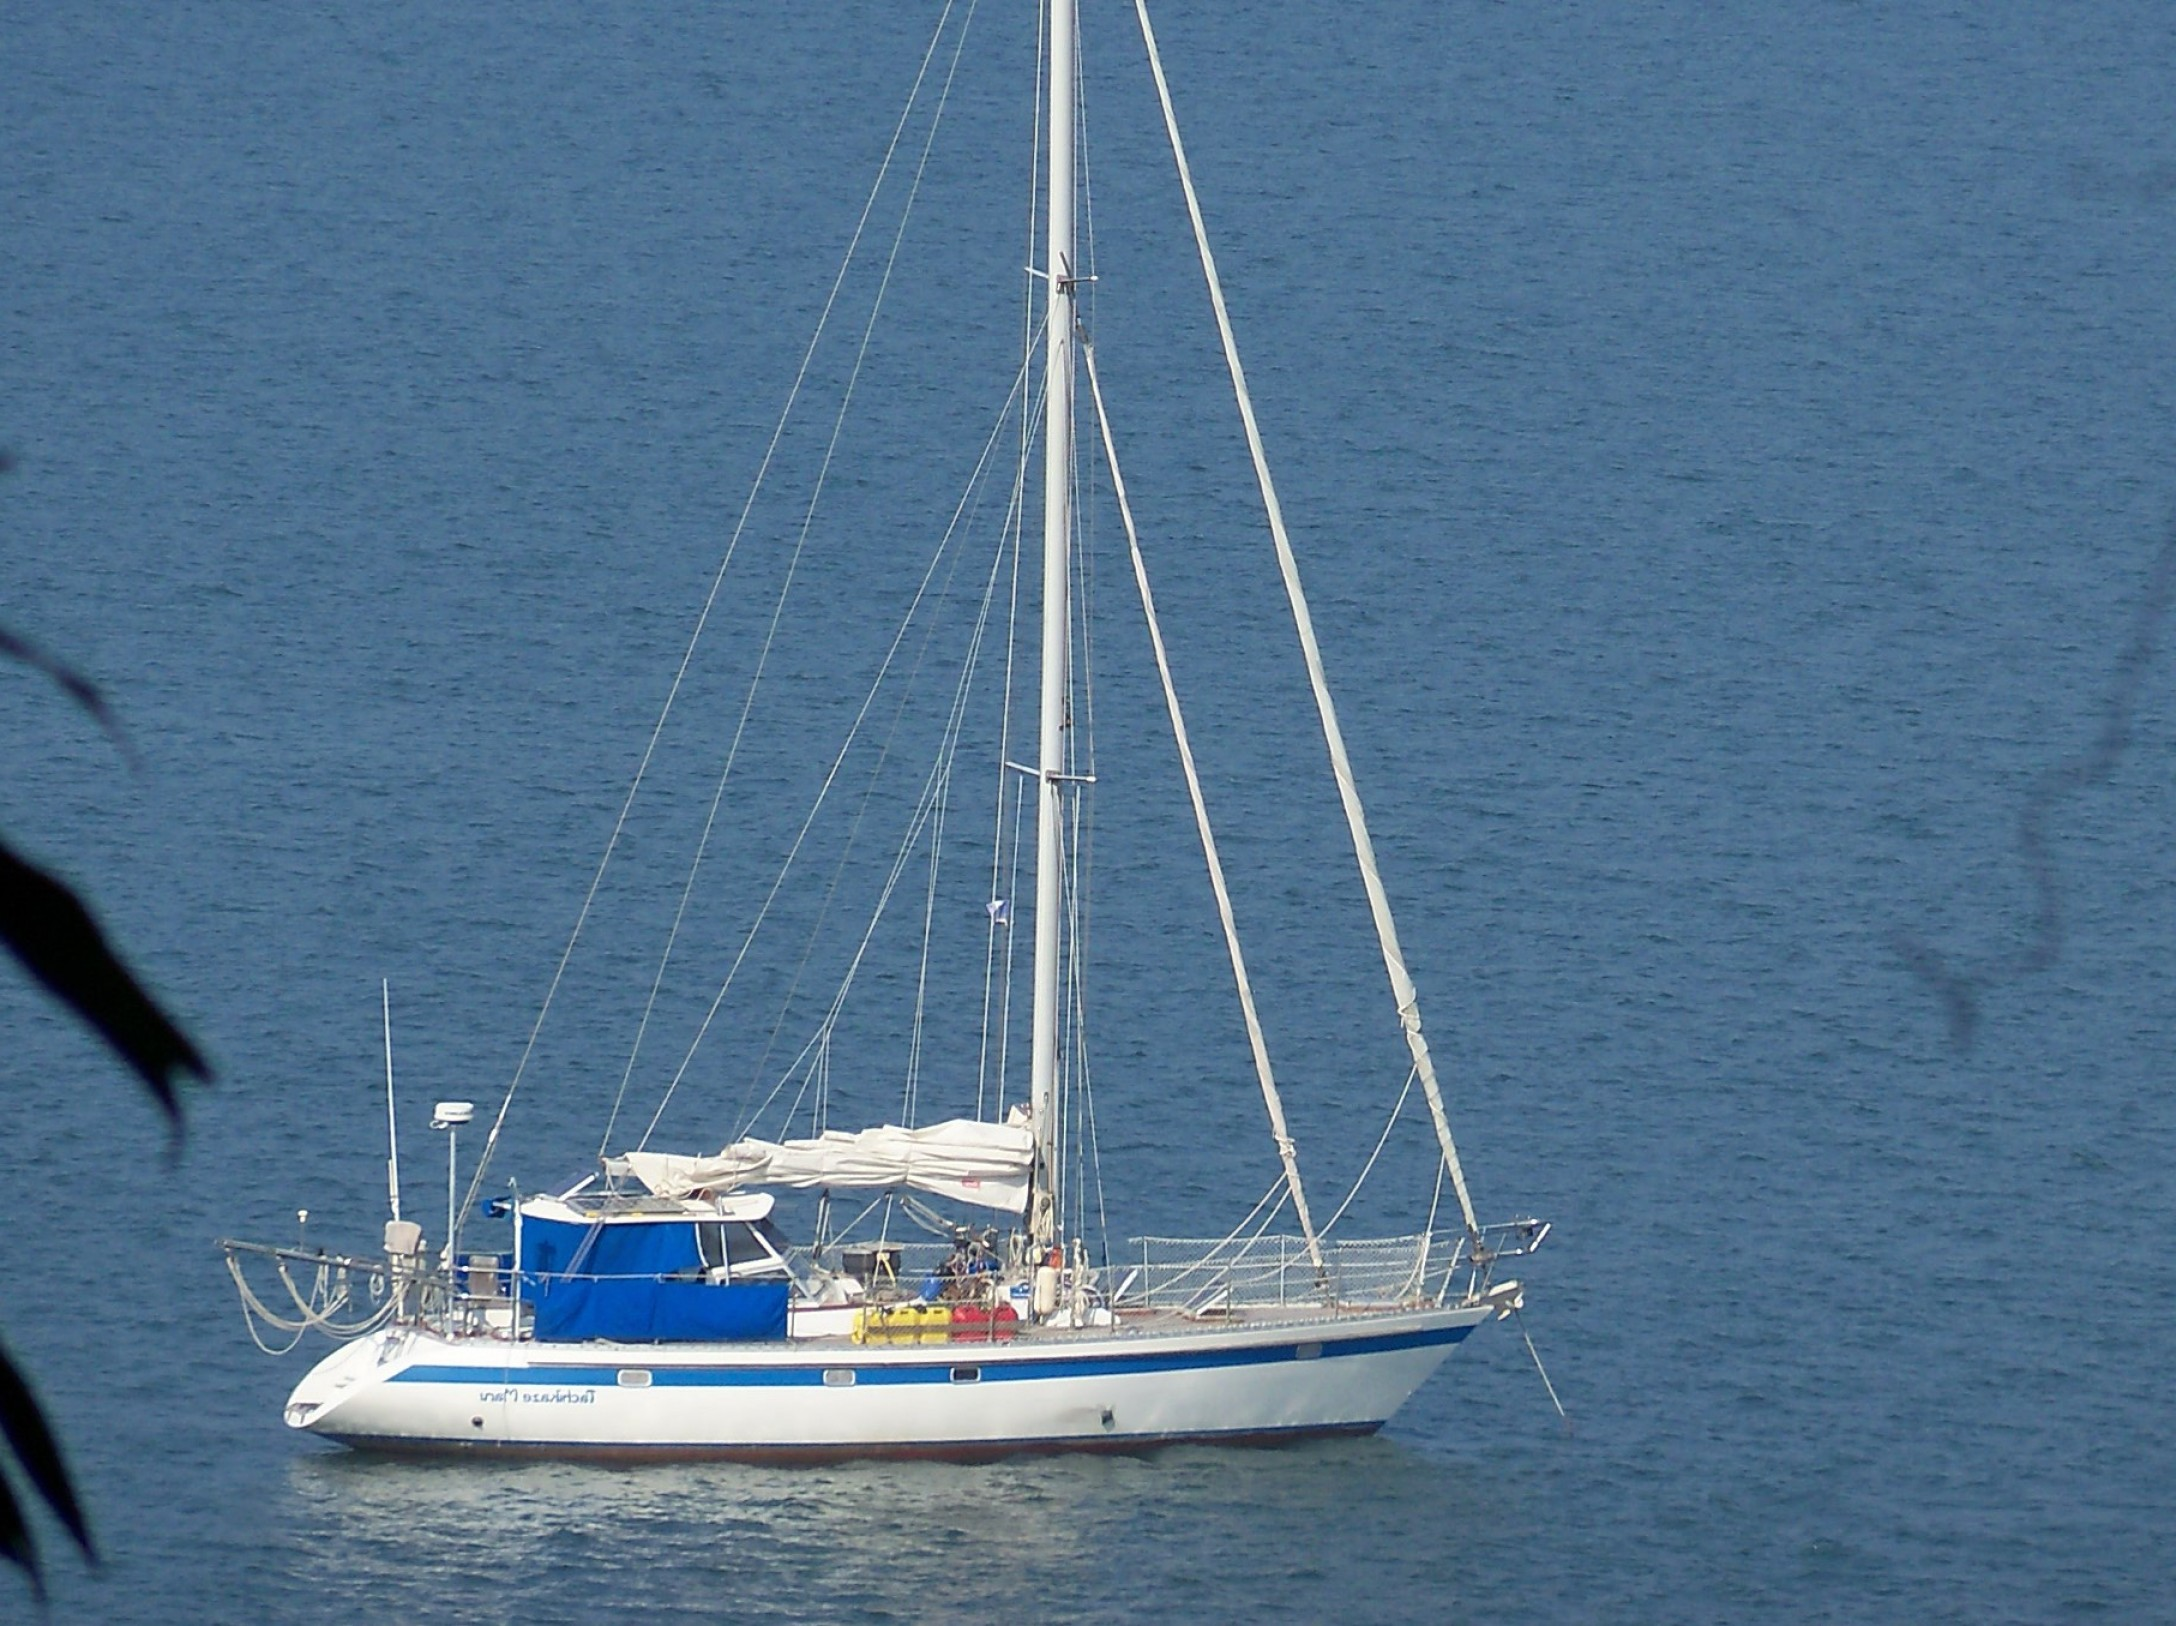 Vanguard Vector Sailboat: Portlights For Sailboats Or Sailboats For Sale By Owner With Sailboat Rental Newport Ri Also Sailboats For Sale Ct Together With